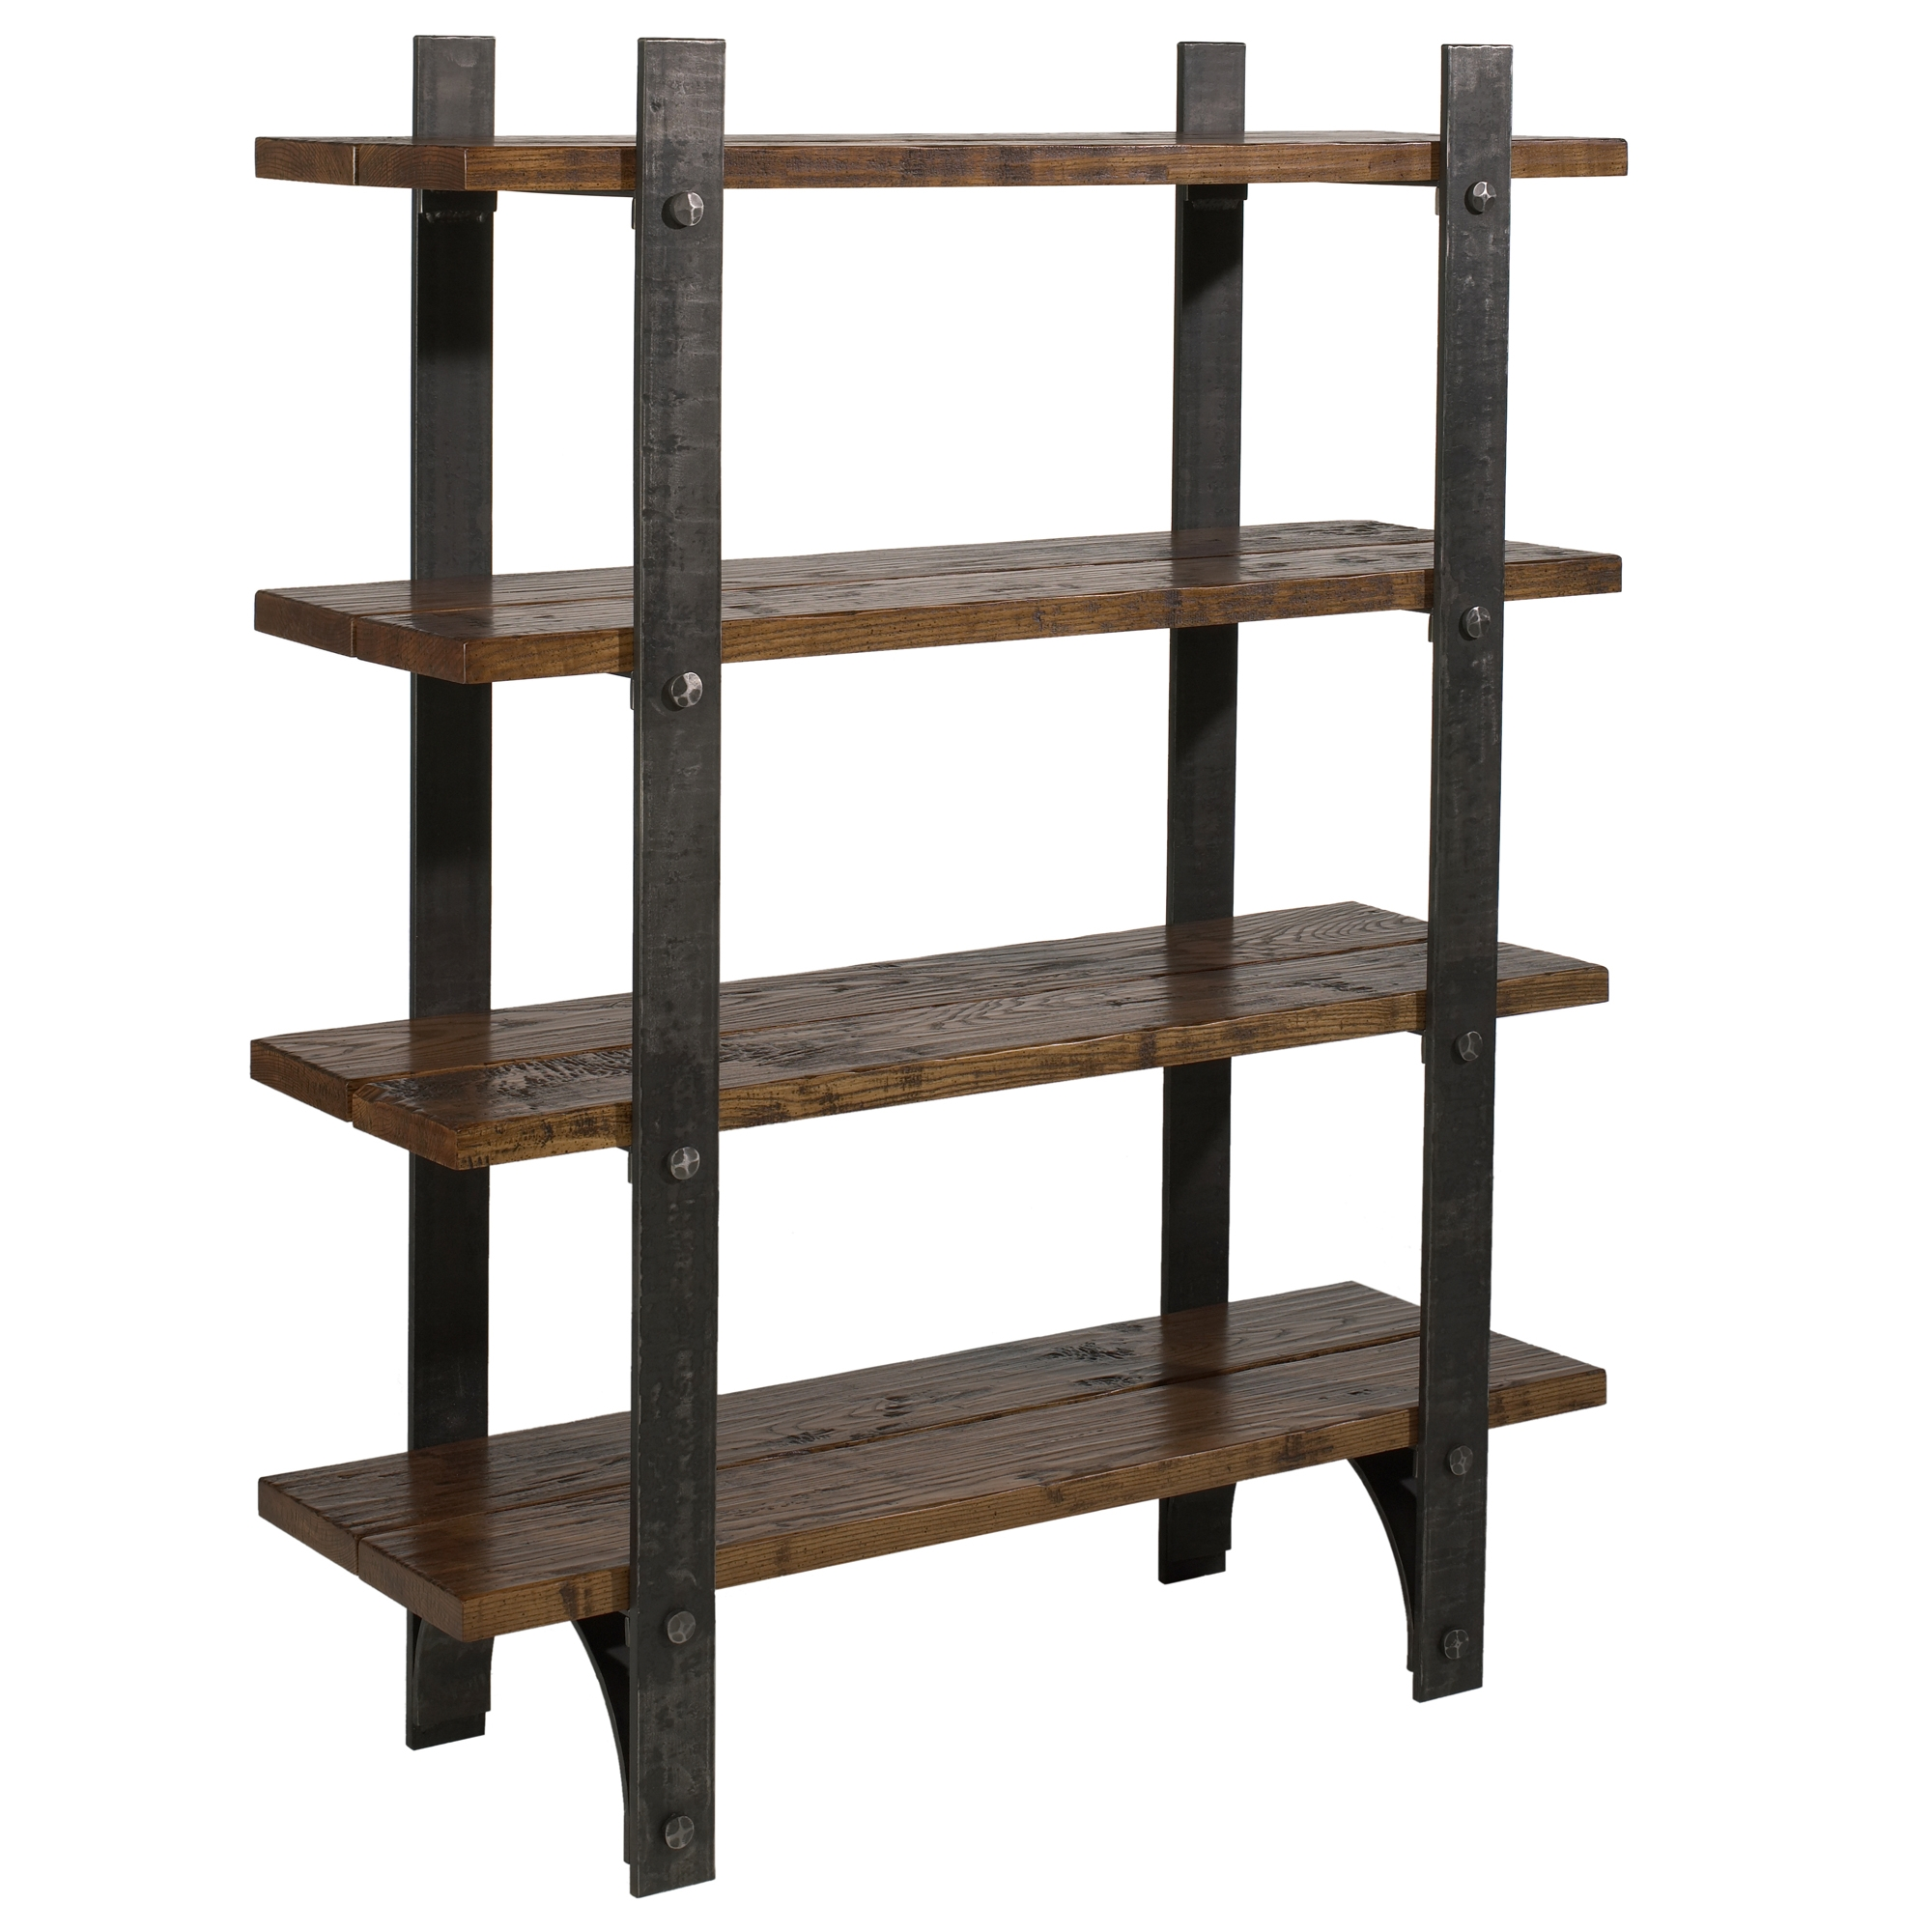 Wonderful image of Iron Shelf Related Keywords & Suggestions Iron Shelf Long Tail  with #614B37 color and 2000x2000 pixels